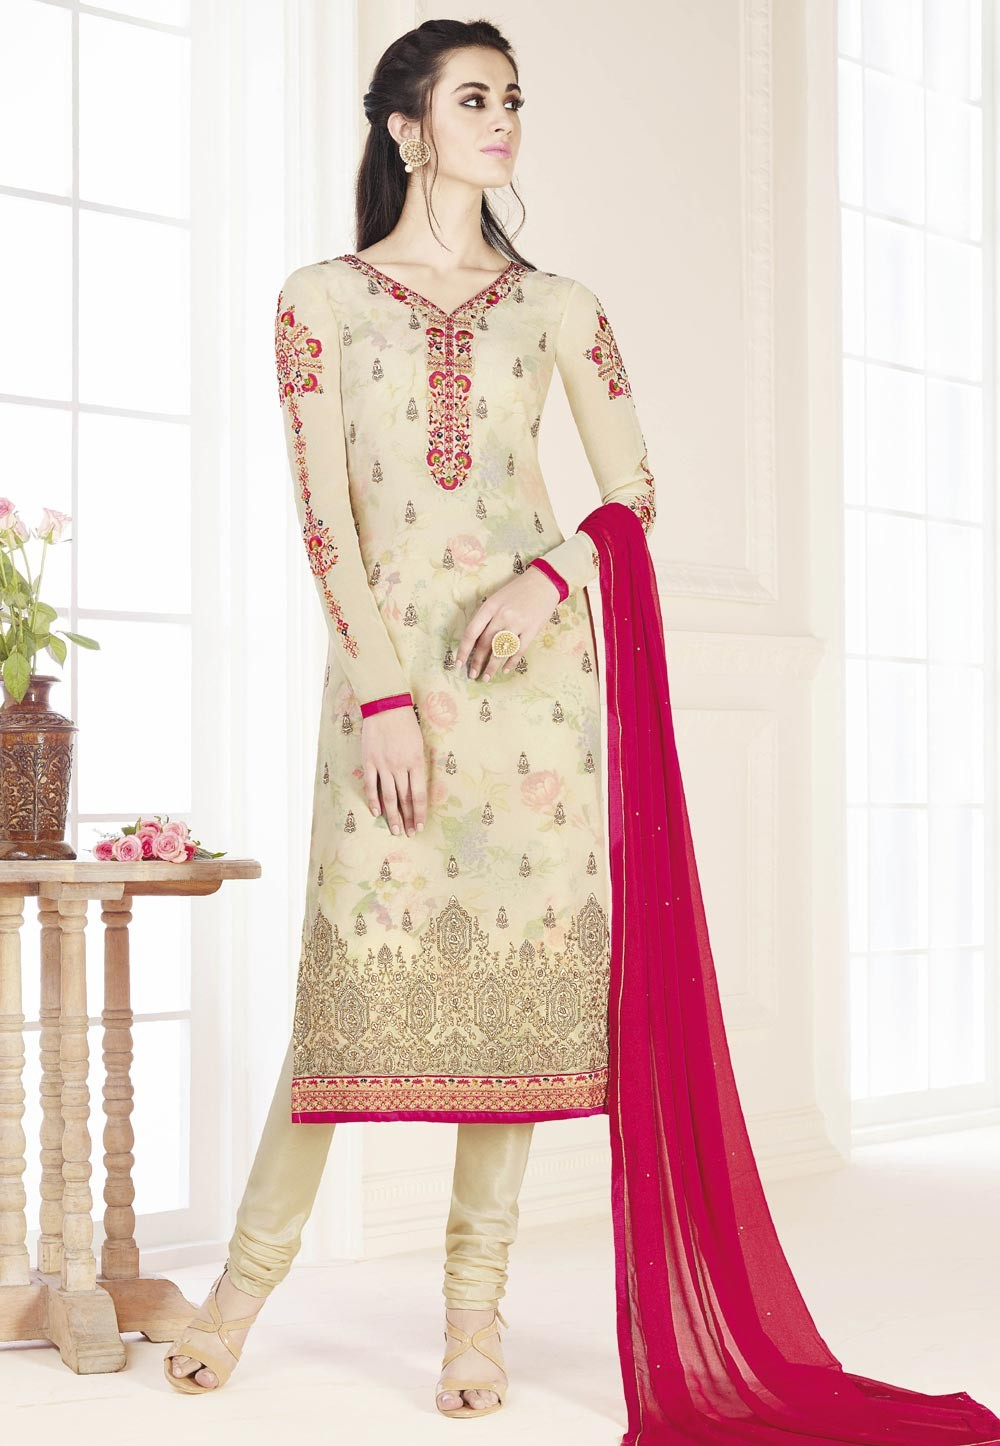 Astounding Salwar Kameez in Cream Color & Georgette Fabric